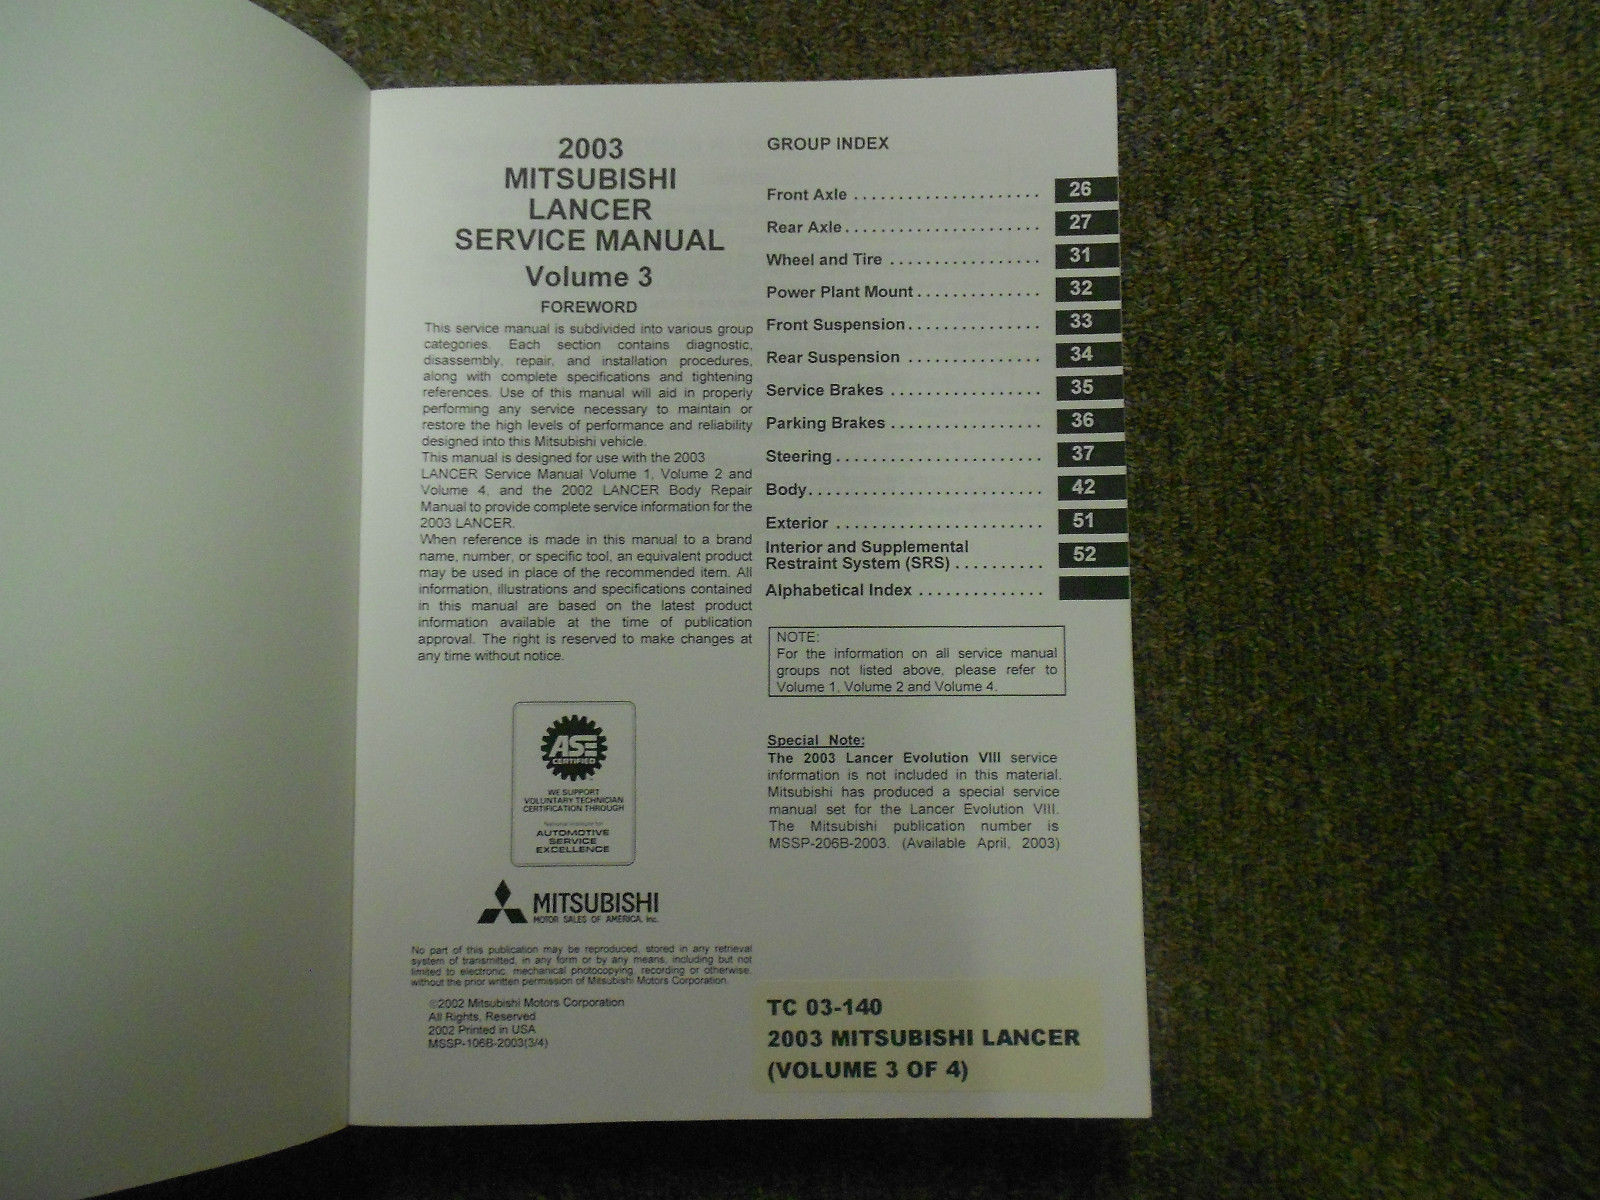 2003 MITSUBISHI Lancer Service Repair Shop Manual FACTORY OEM 4 VOL SET BOOK x image 7